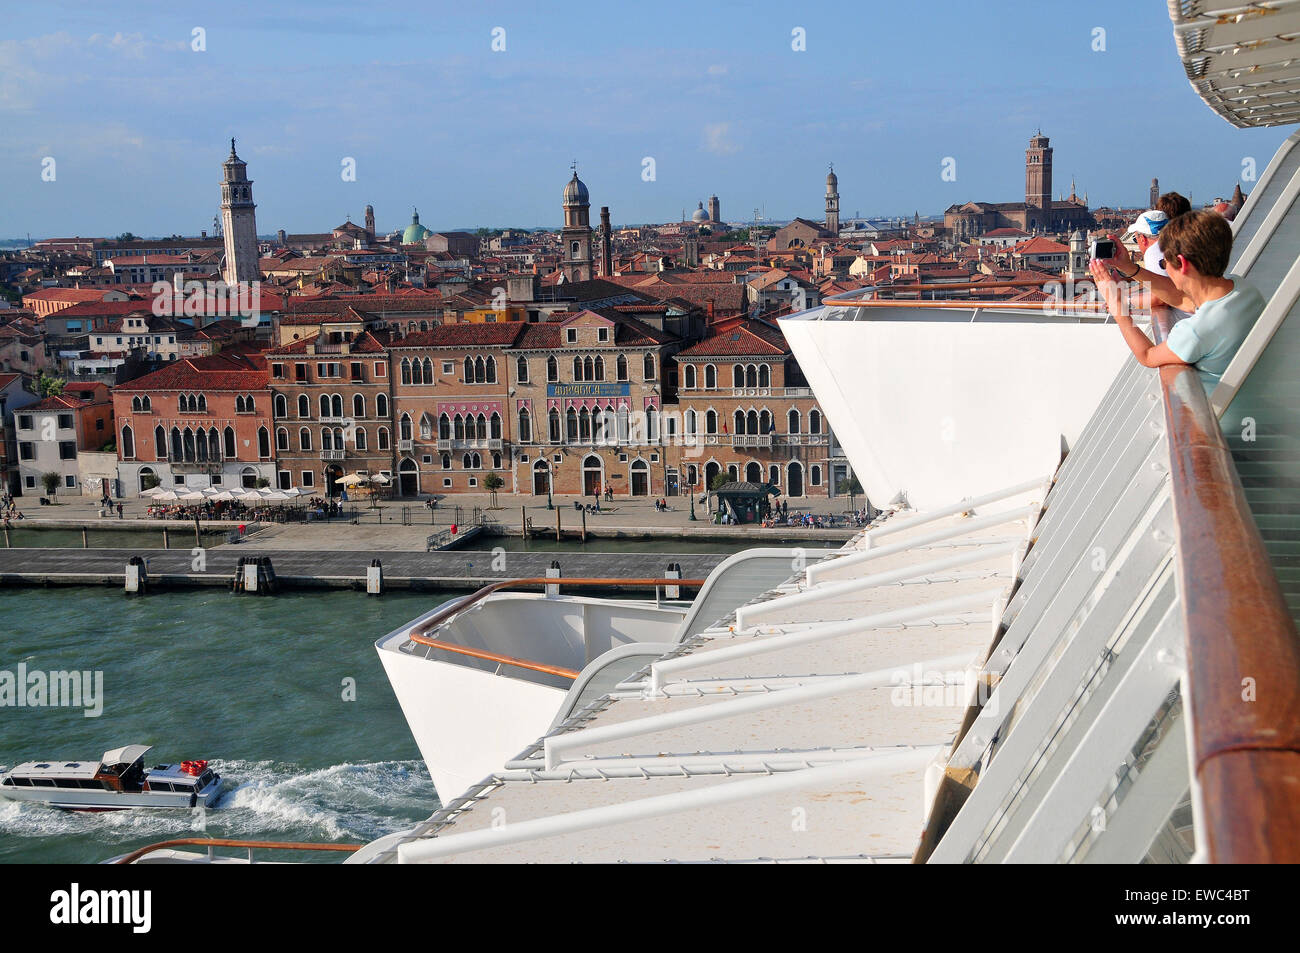 There are many popular sites to see along Venice Italy's cruise ship port/harbor. - Stock Image